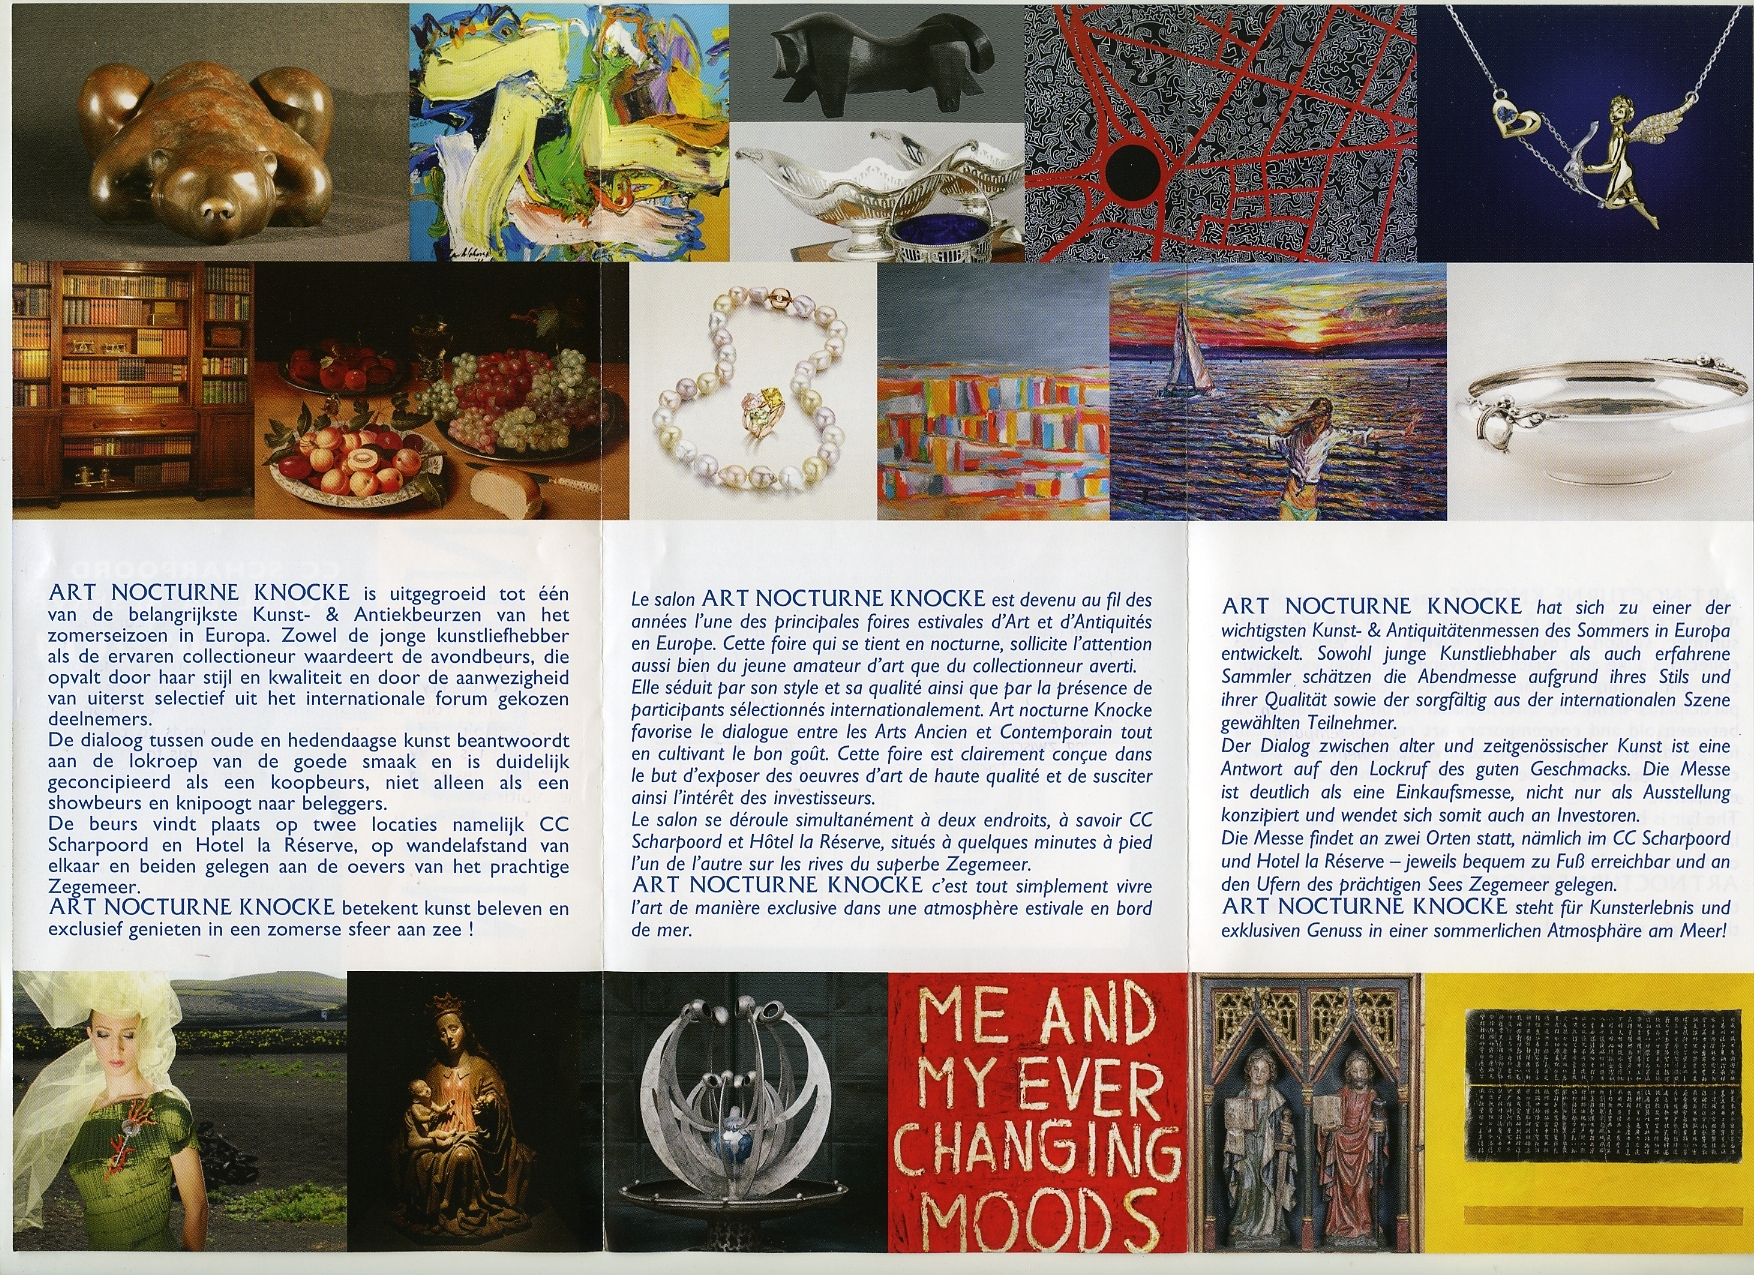 The booklet of The Art Nocturne Knocke, 09-17.08.2014